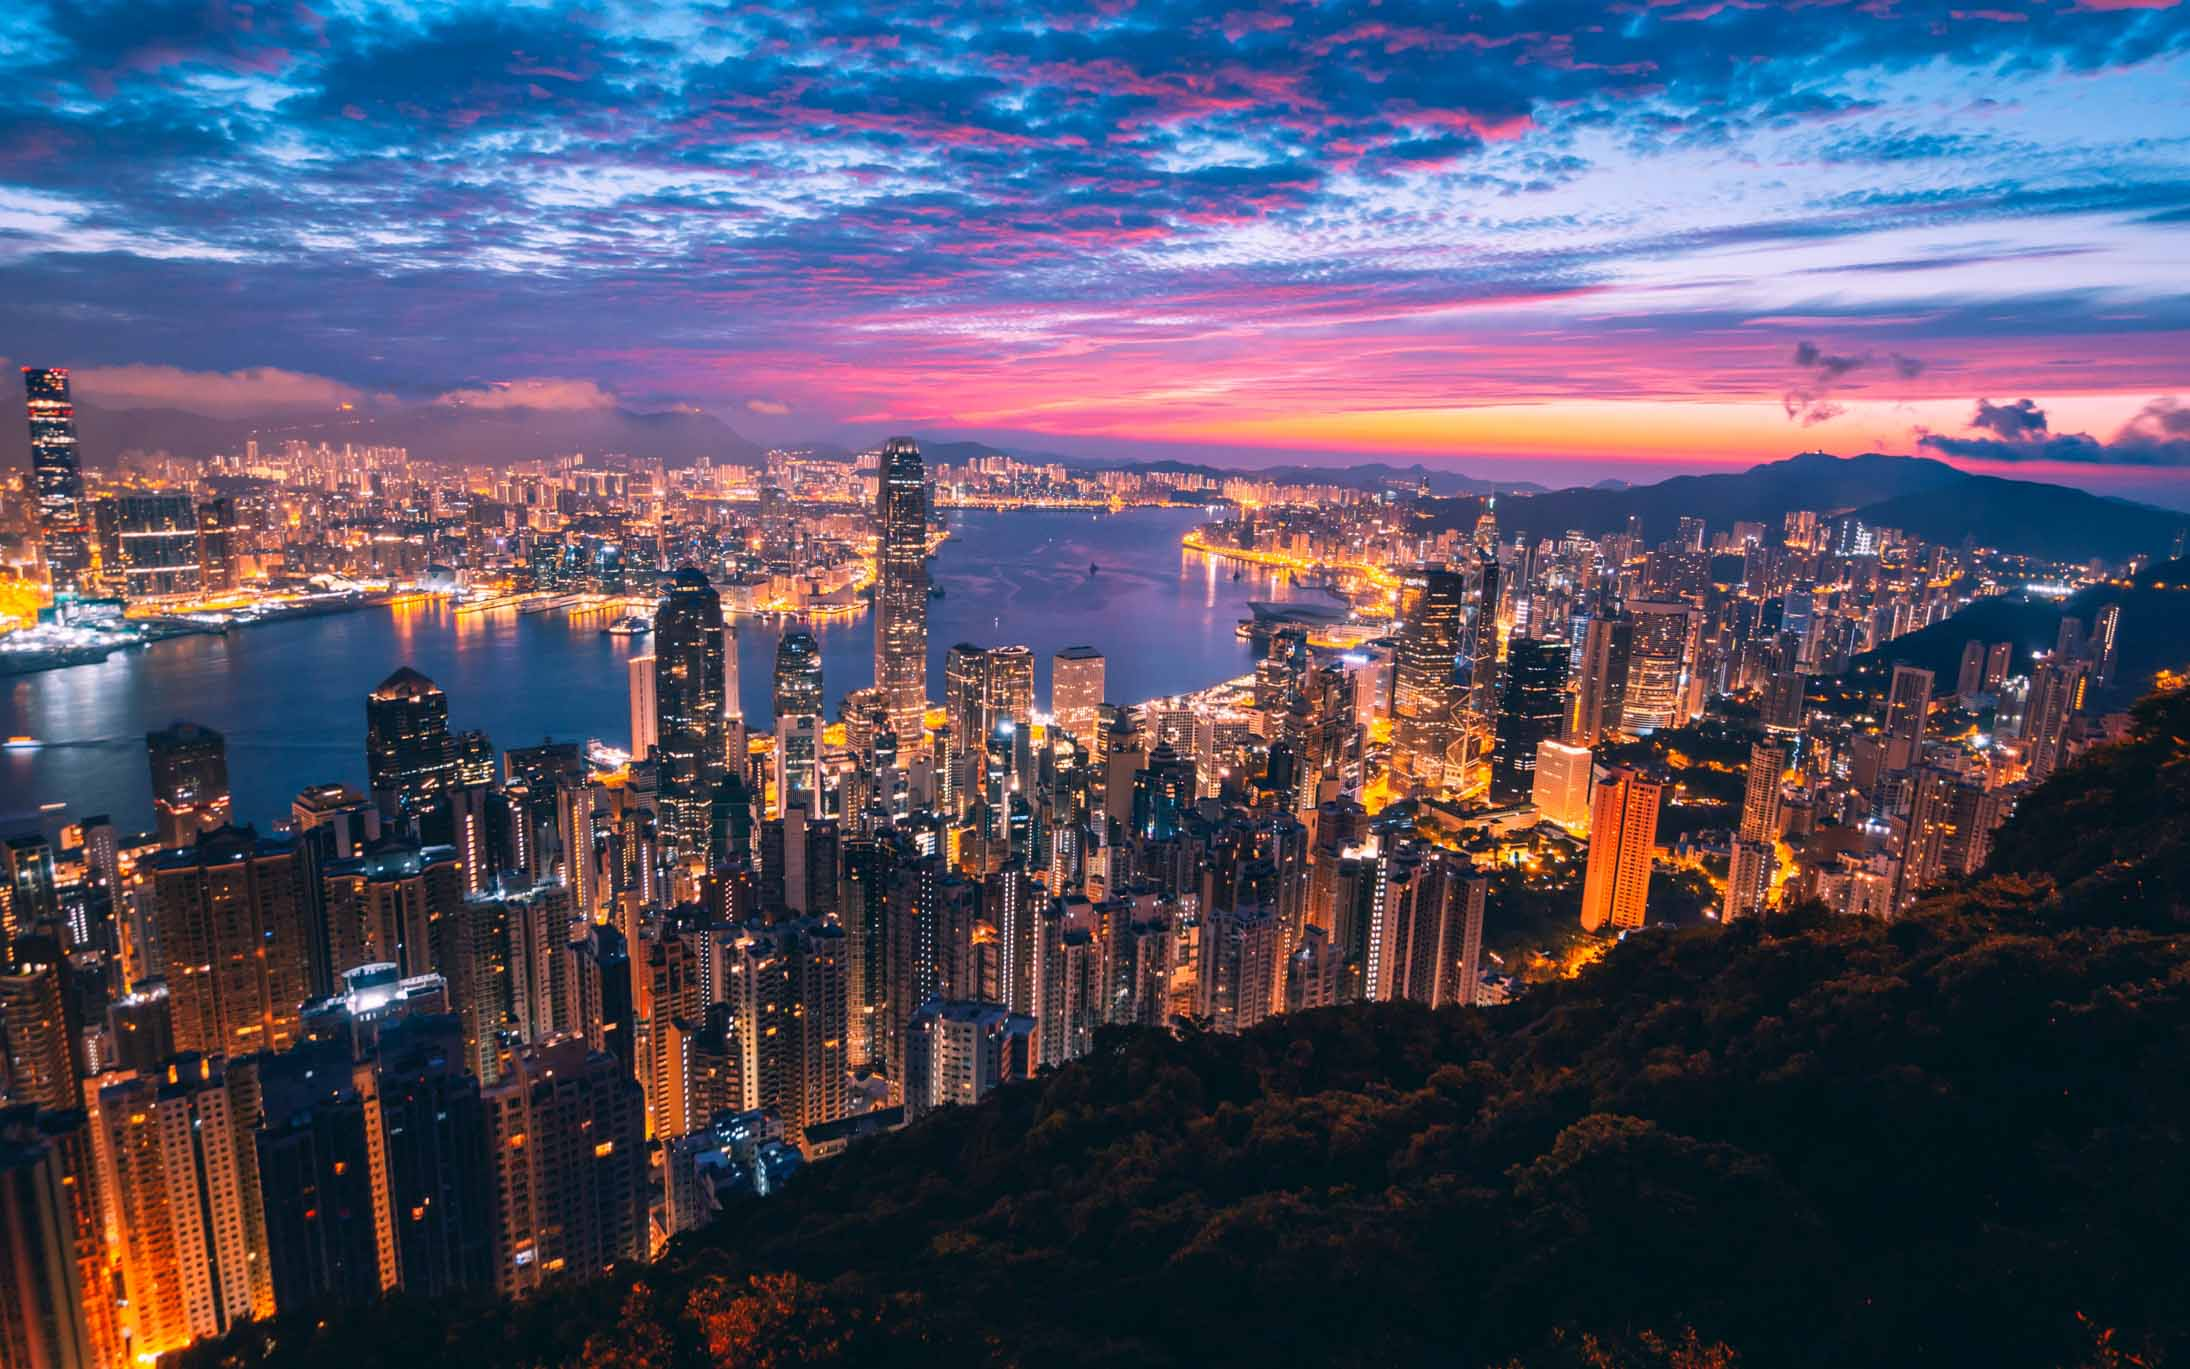 Where to stay in Hong Kong - The Most Convenient Areas For Your Trip